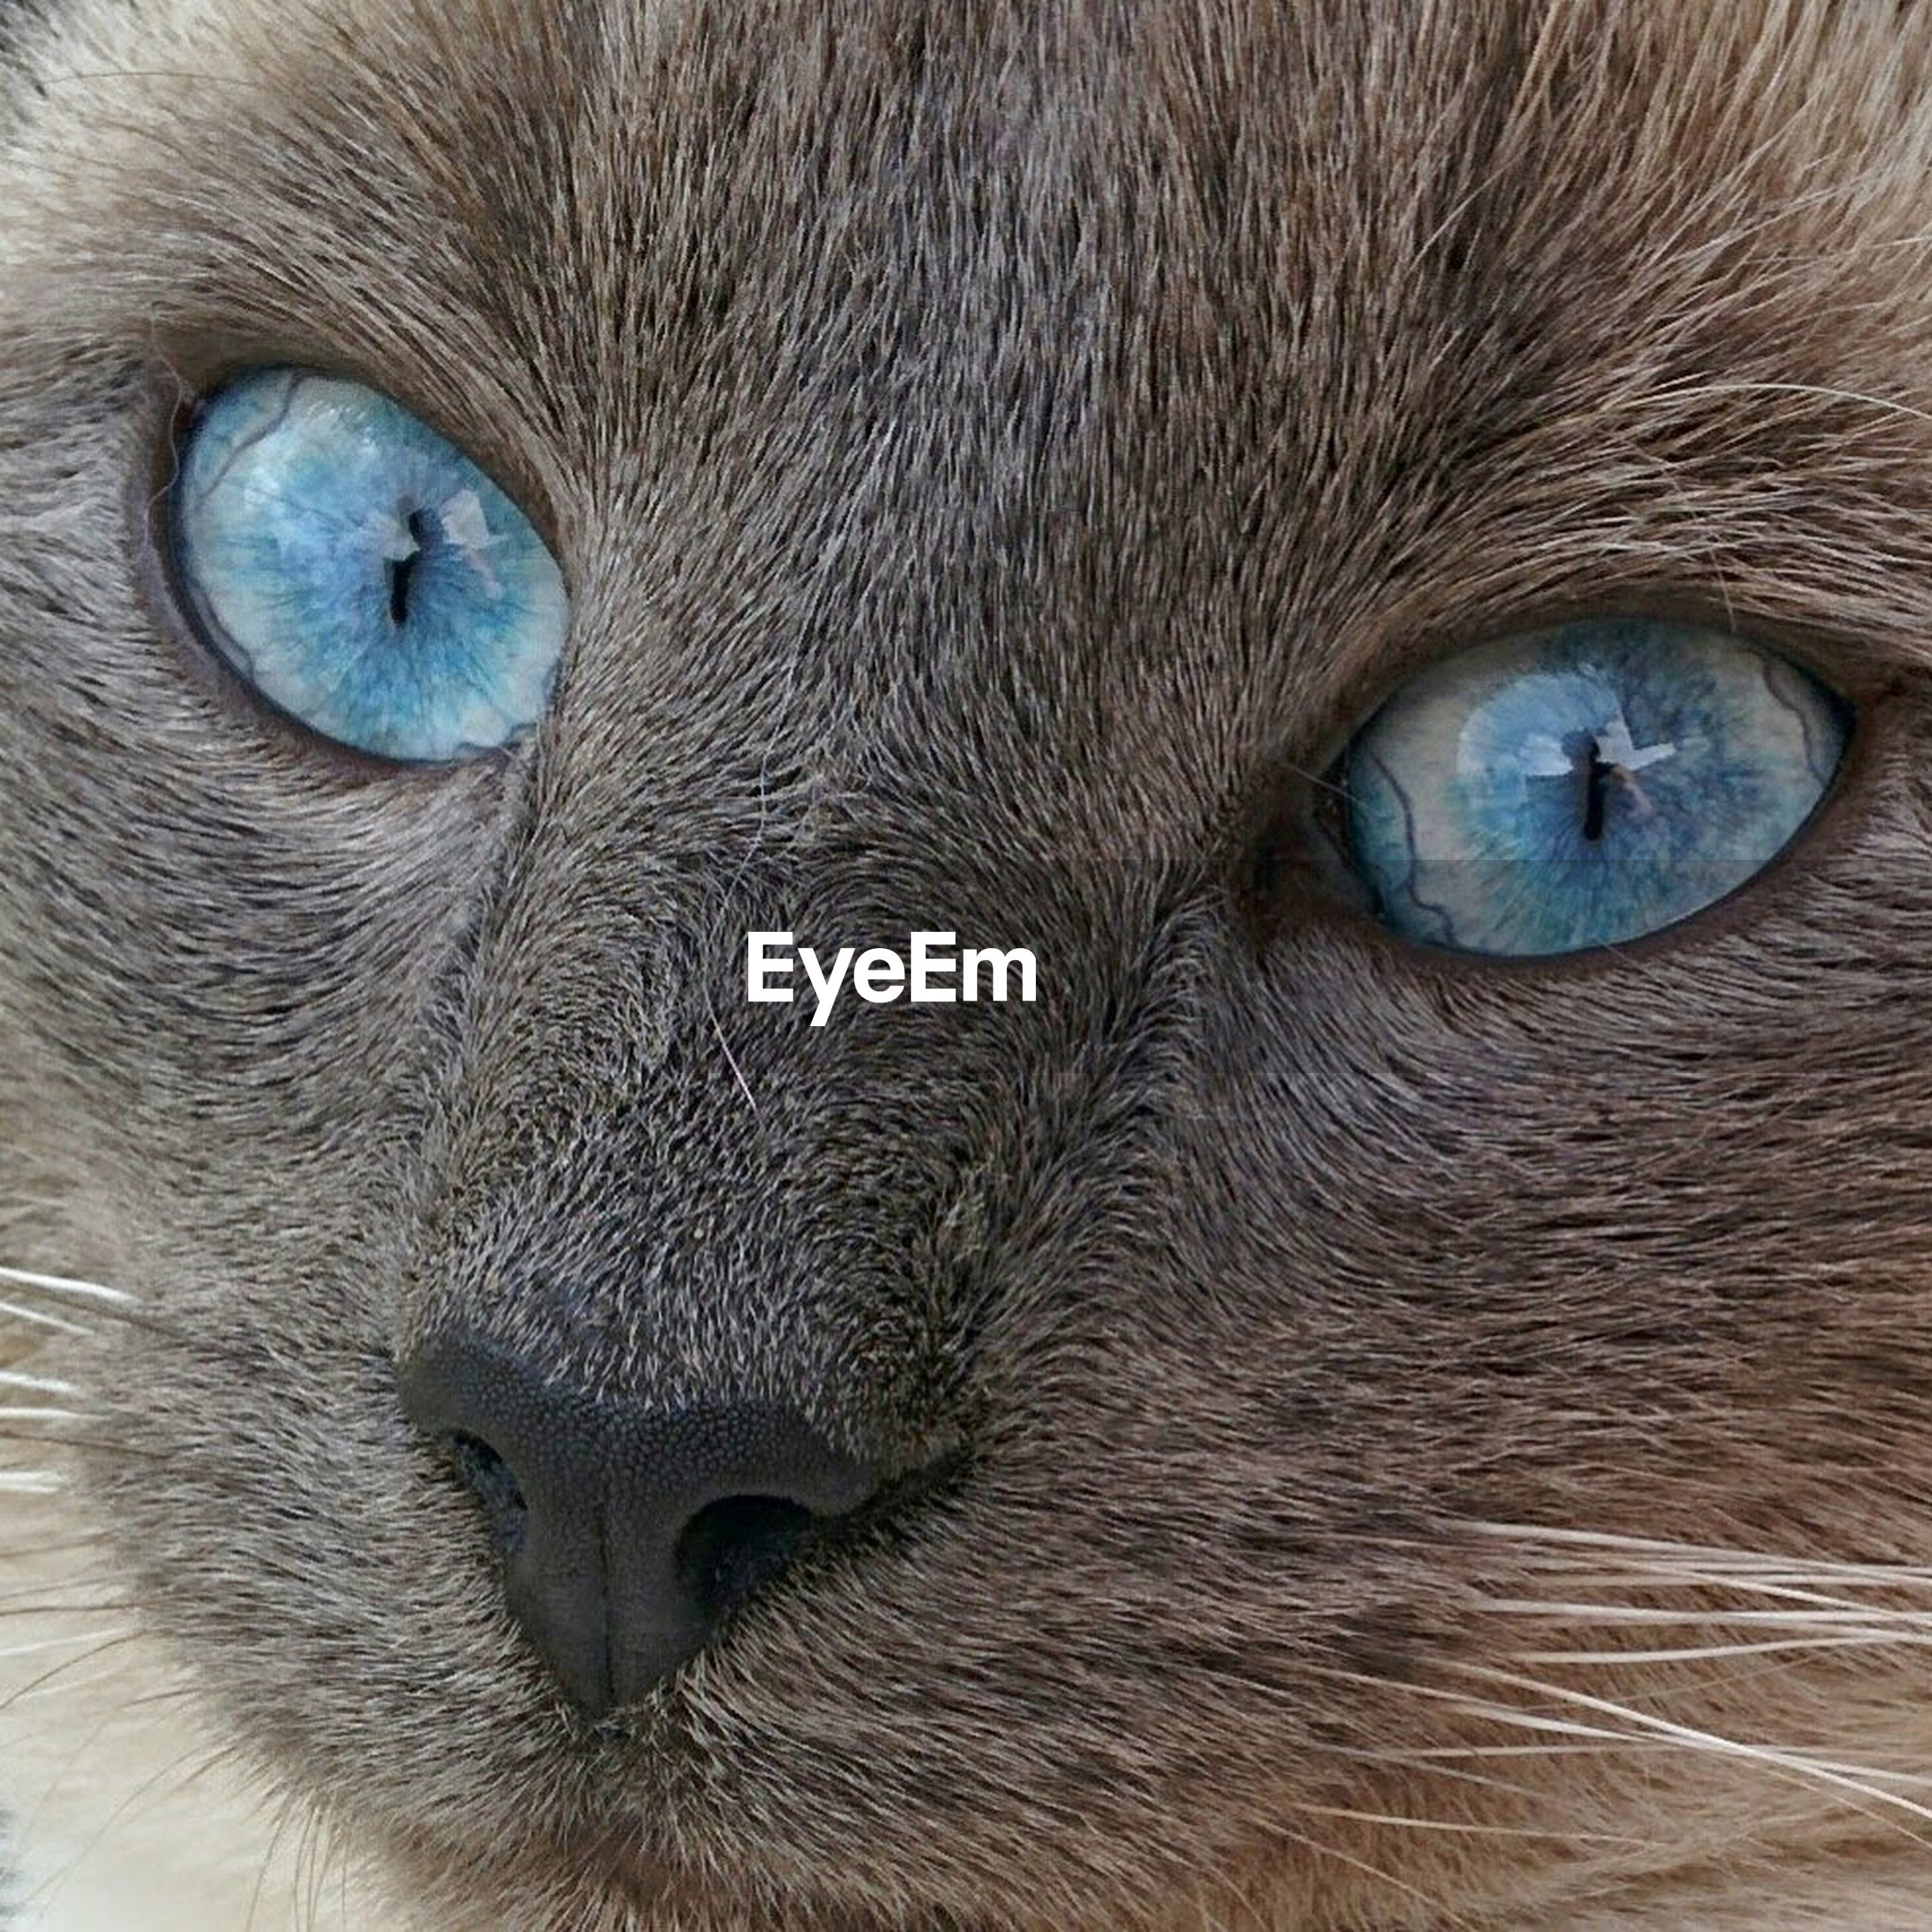 one animal, animal themes, full frame, animal eye, animal head, close-up, backgrounds, animal body part, portrait, domestic animals, mammal, looking at camera, part of, cat, extreme close up, pets, extreme close-up, whisker, domestic cat, animal hair